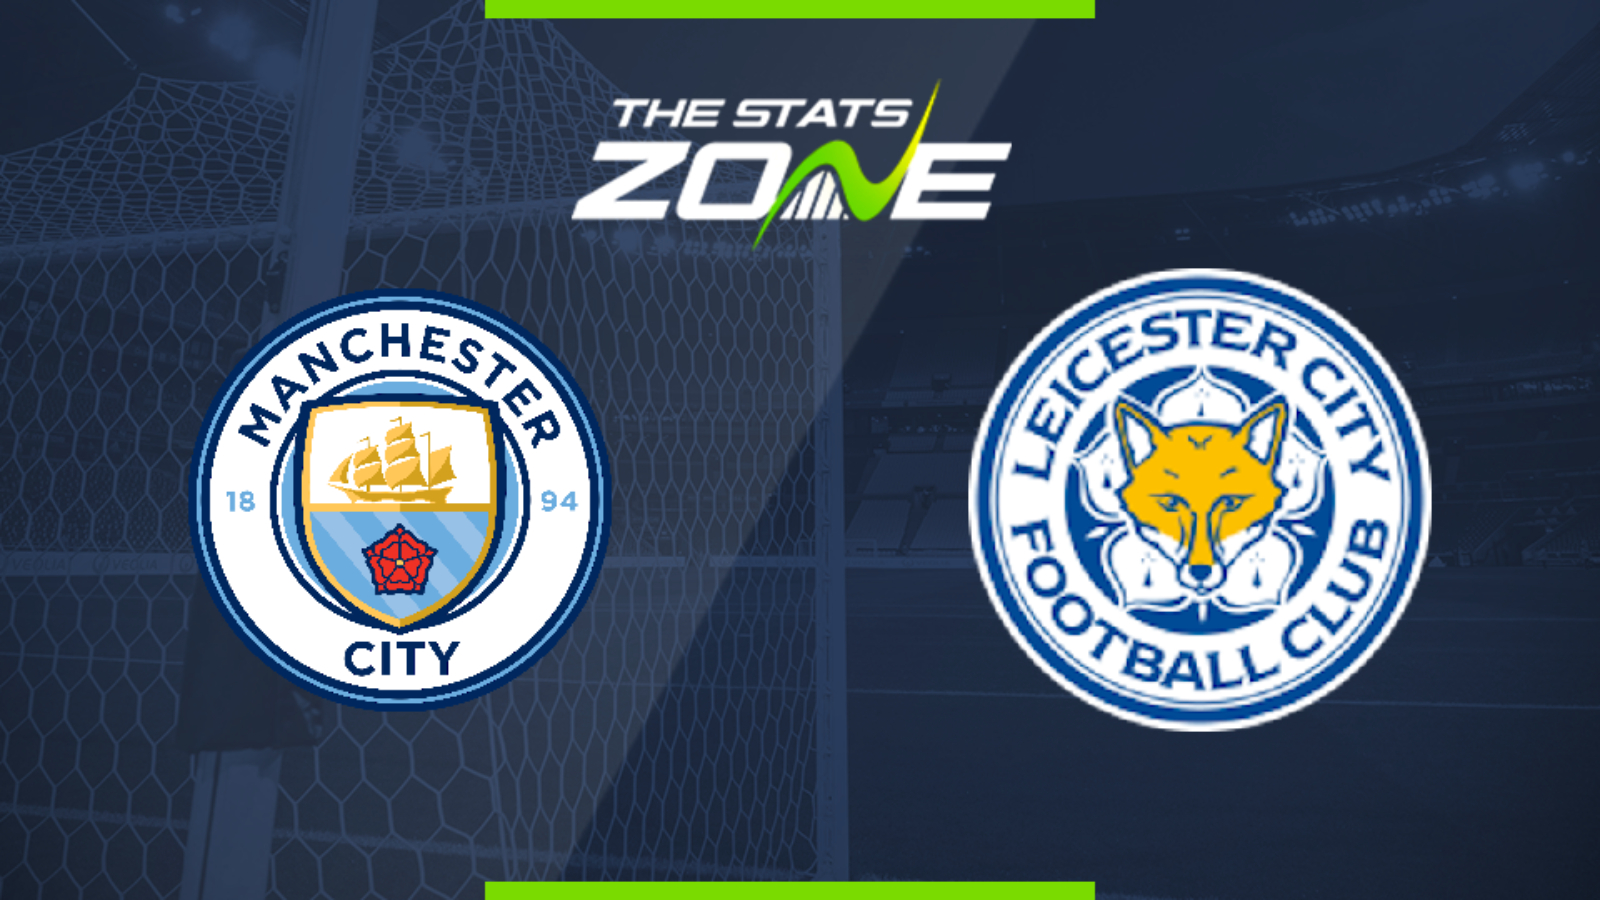 man city vs leicester city - photo #10